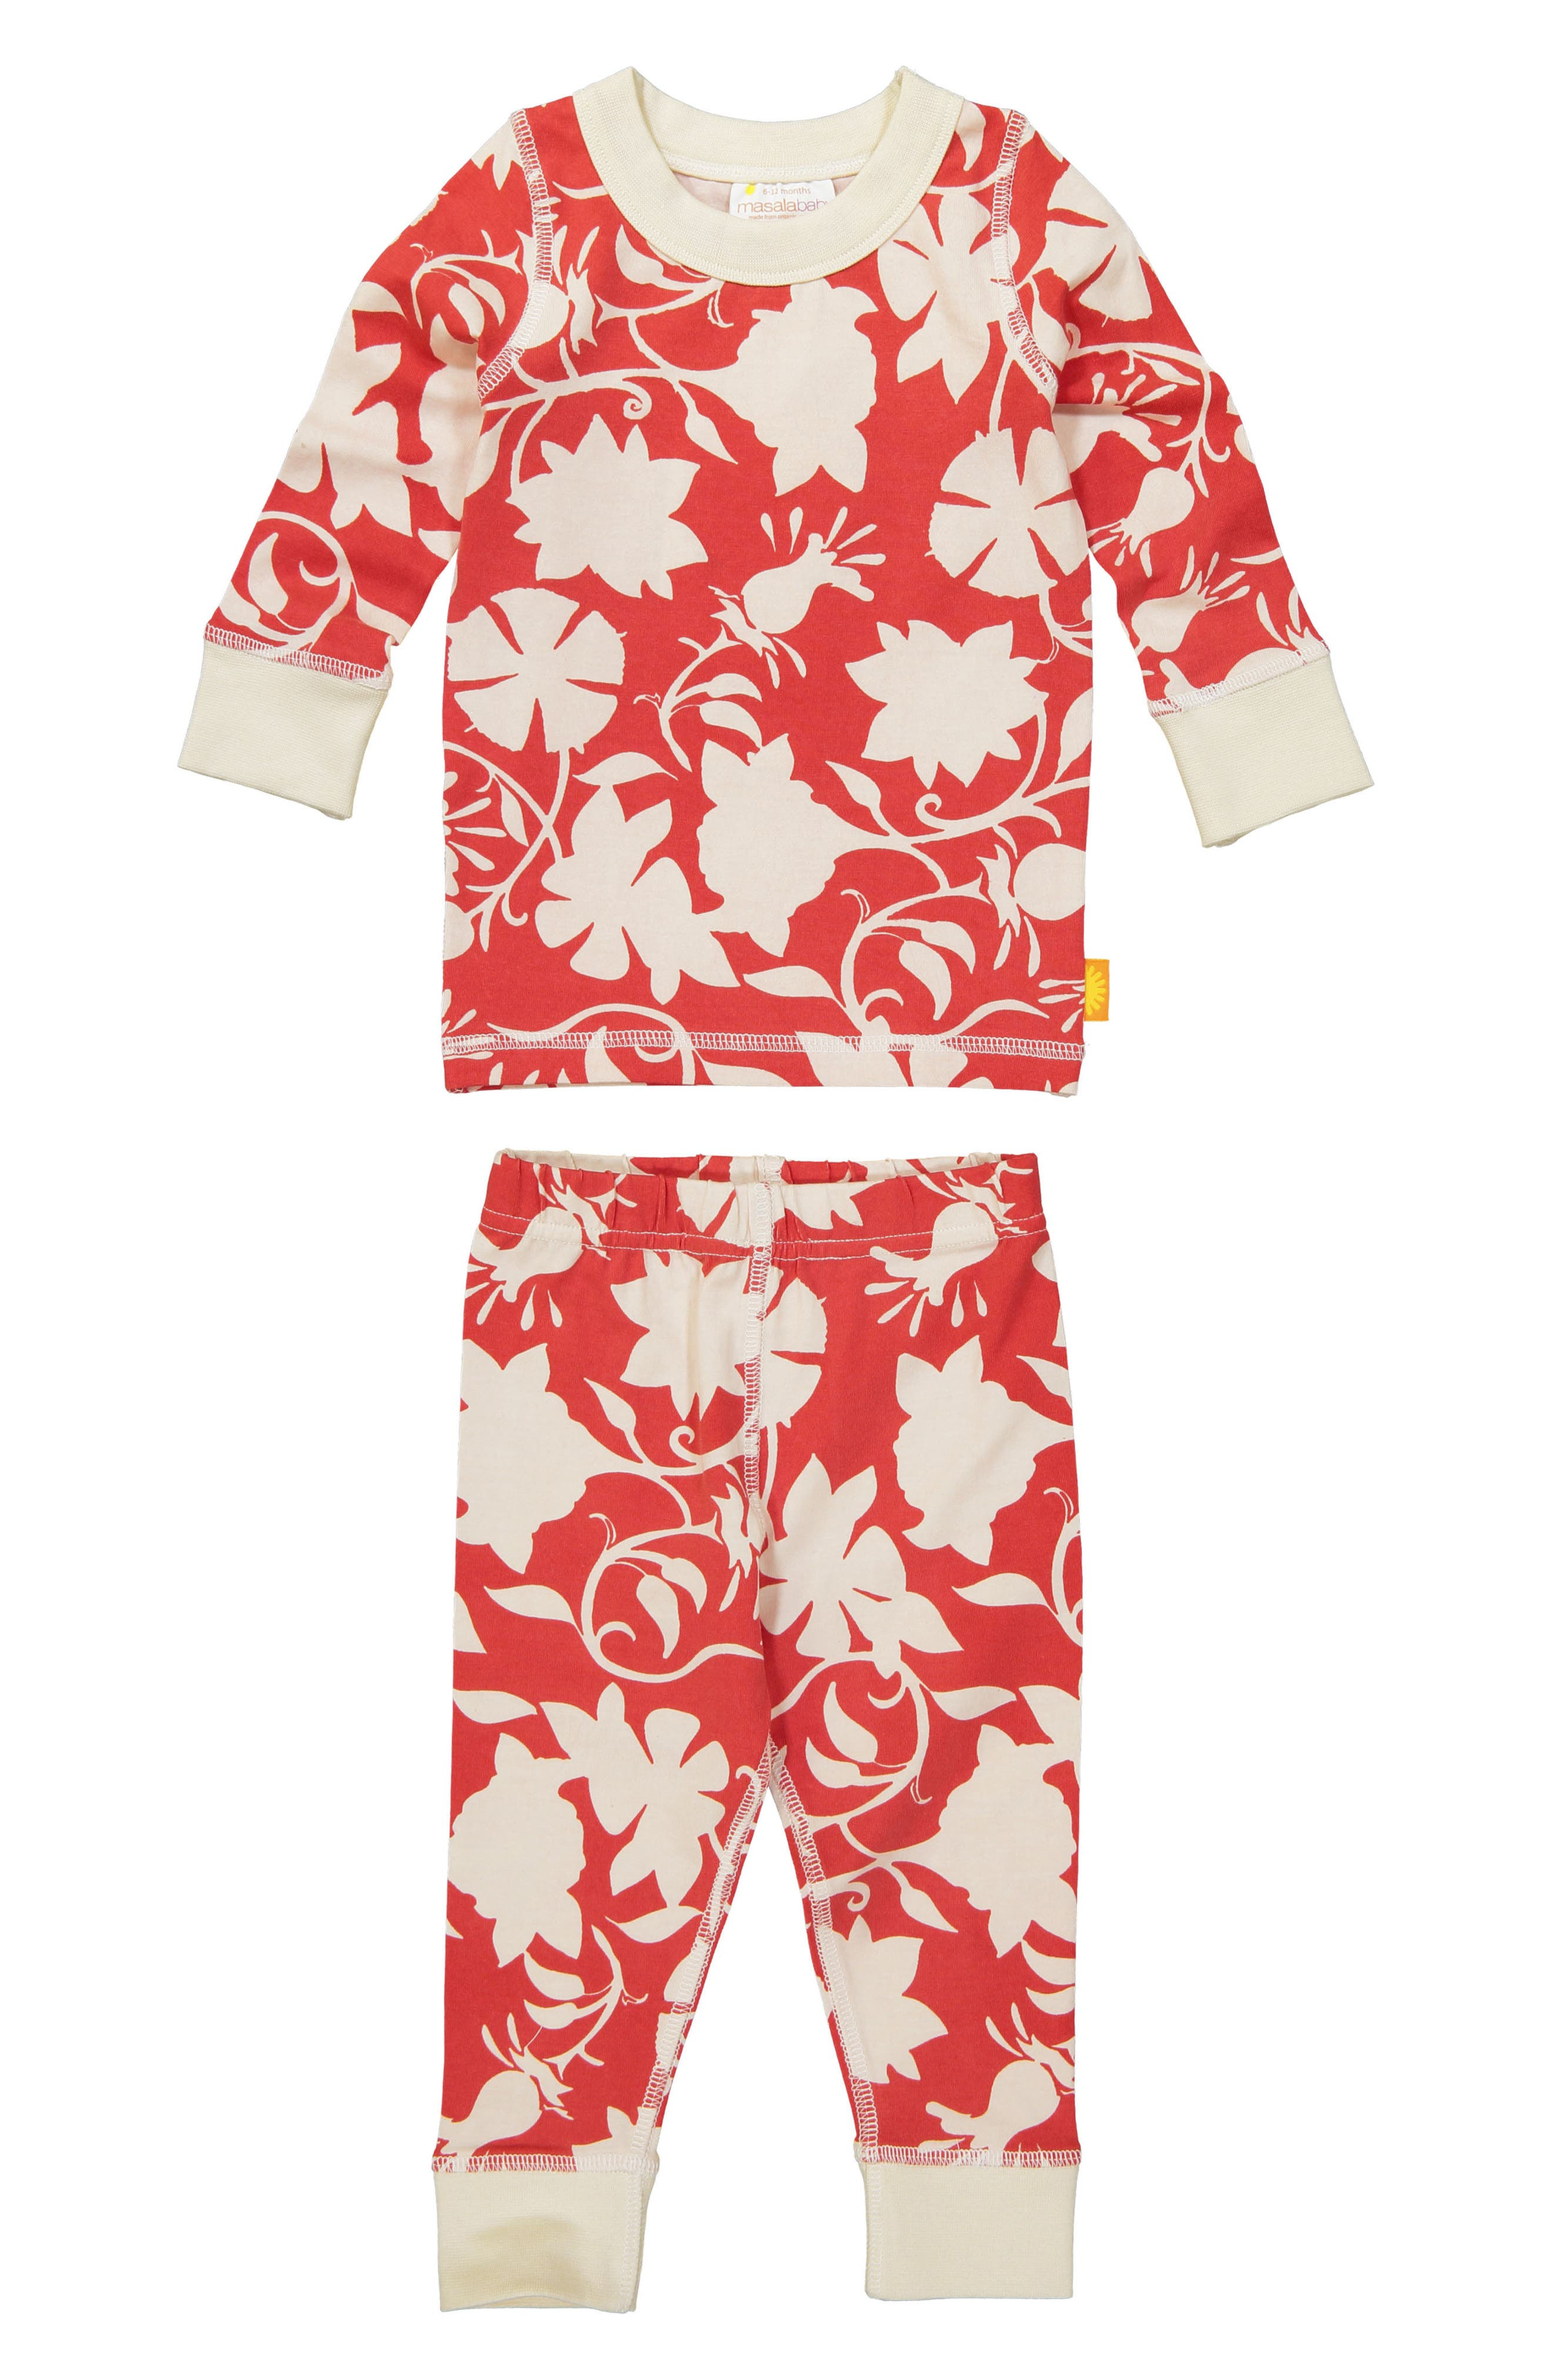 Jolie Organic Cotton Fitted Two-Piece Pajamas,                             Main thumbnail 1, color,                             RED